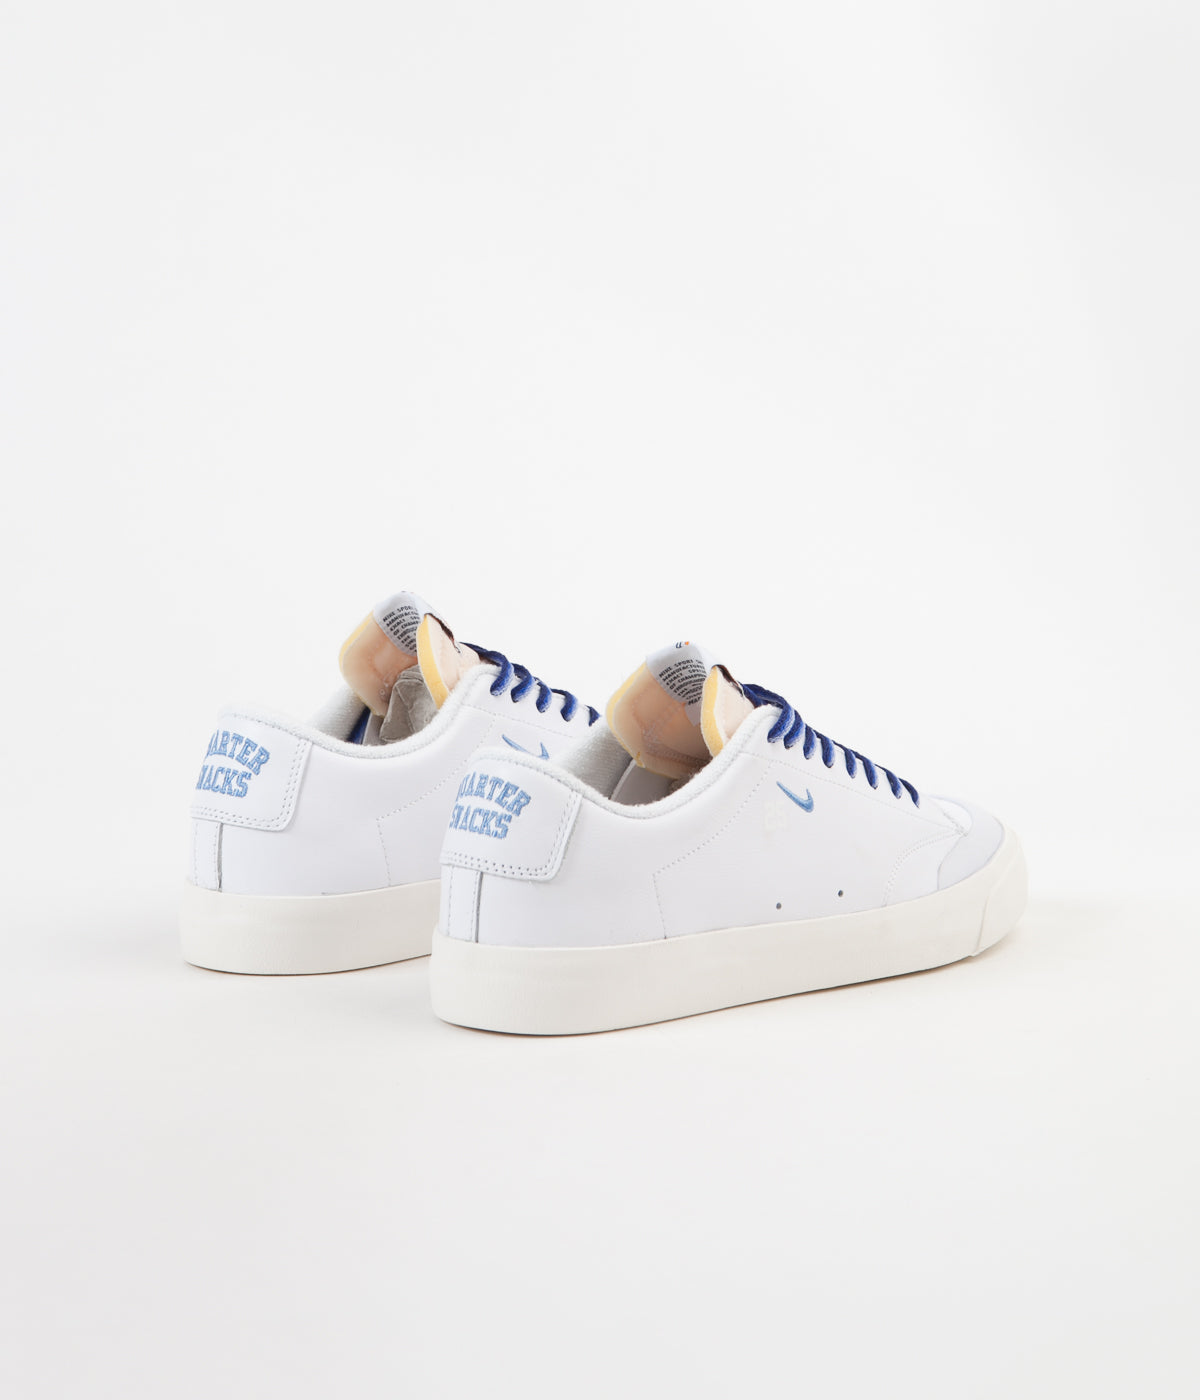 da1748863a4d ... Nike SB x Quartersnacks Blazer Low XT Shoes - White   University Blue -  Sail ...